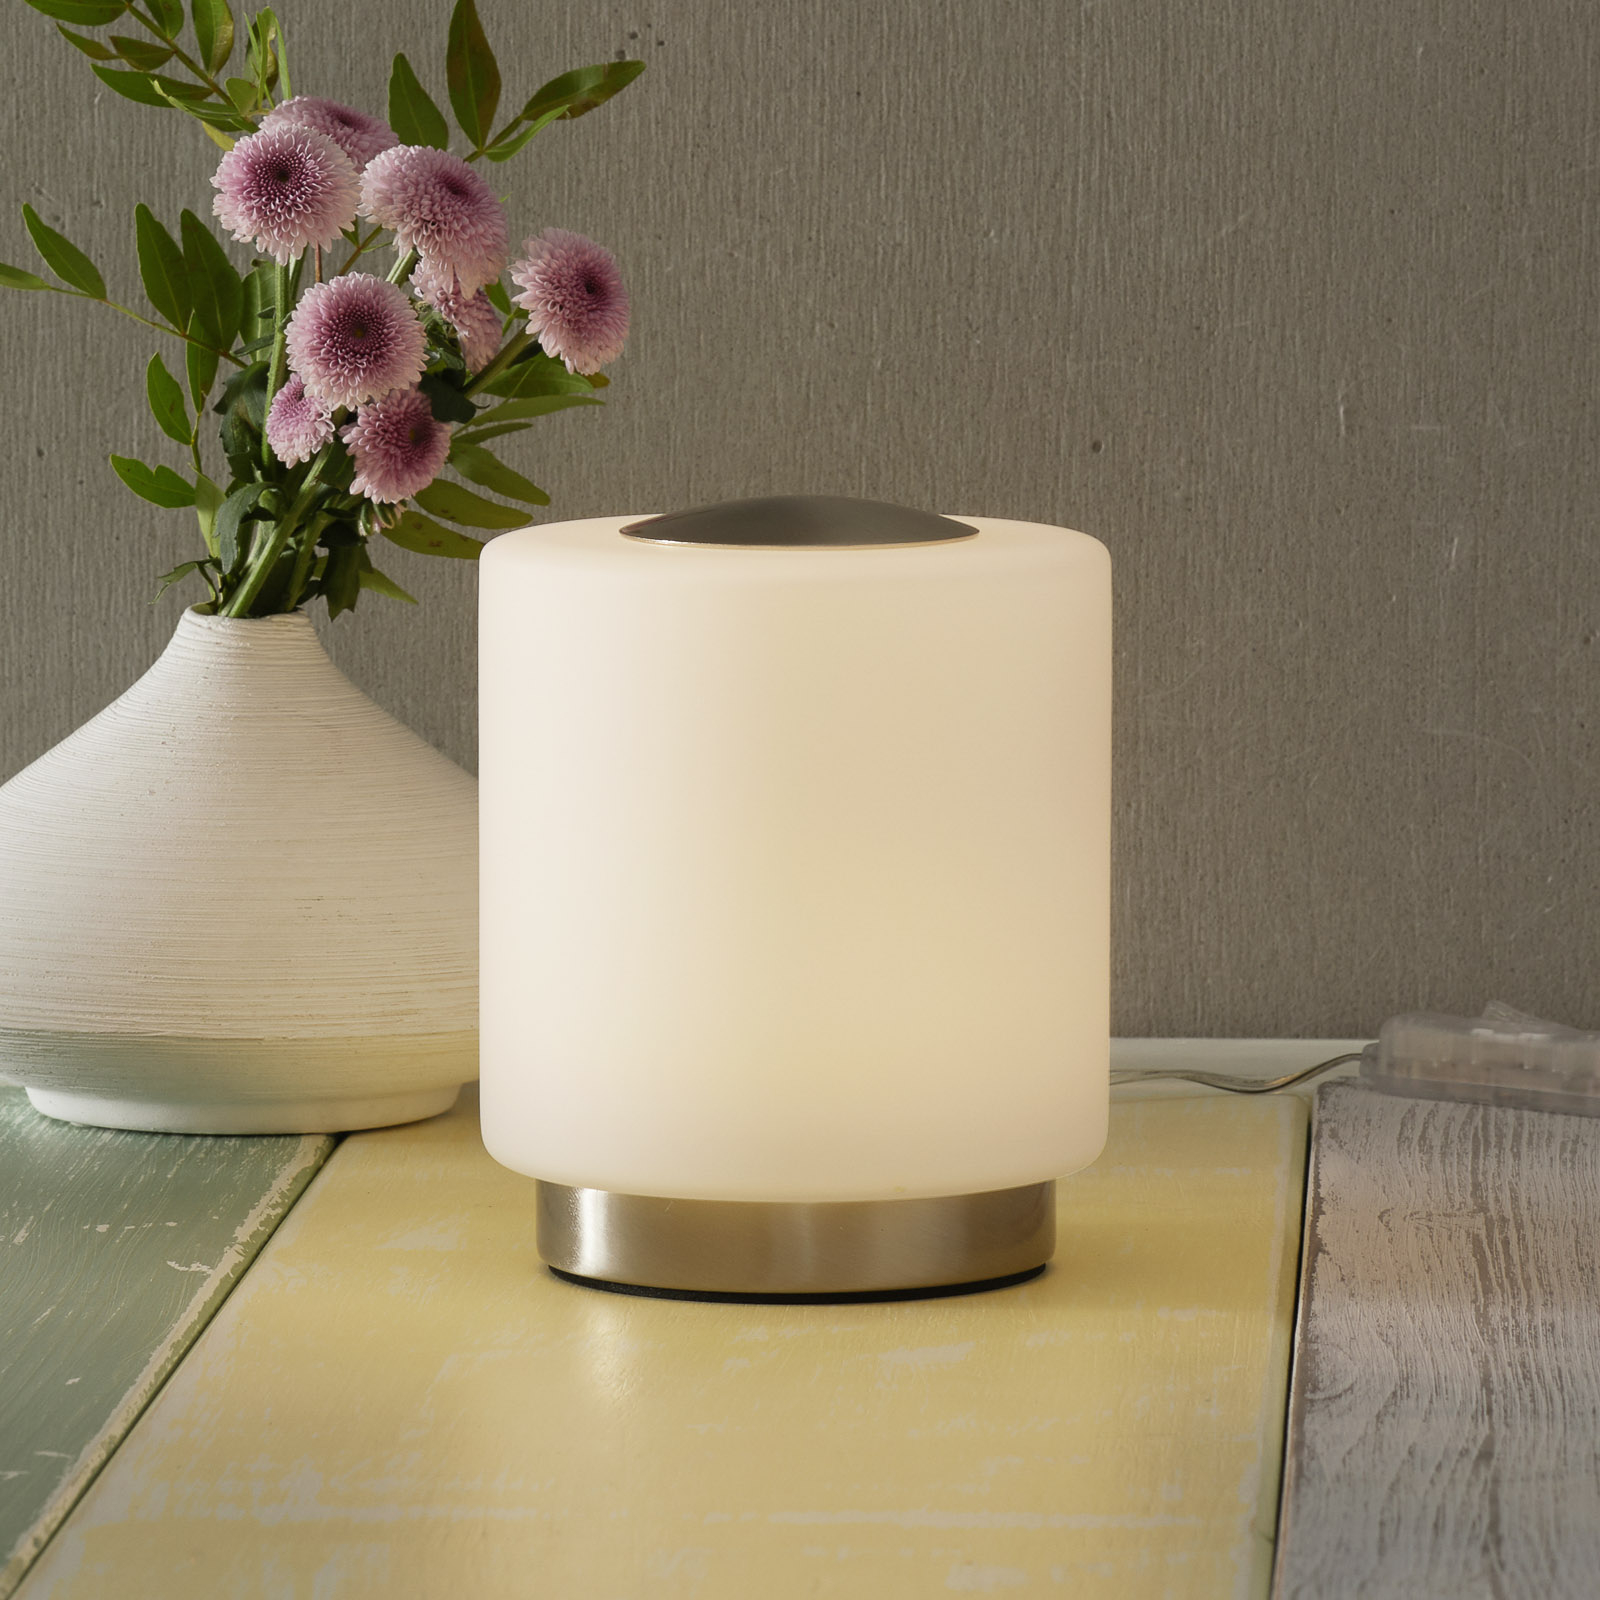 Dimmable Simi table lamp with touch function_3502527_1